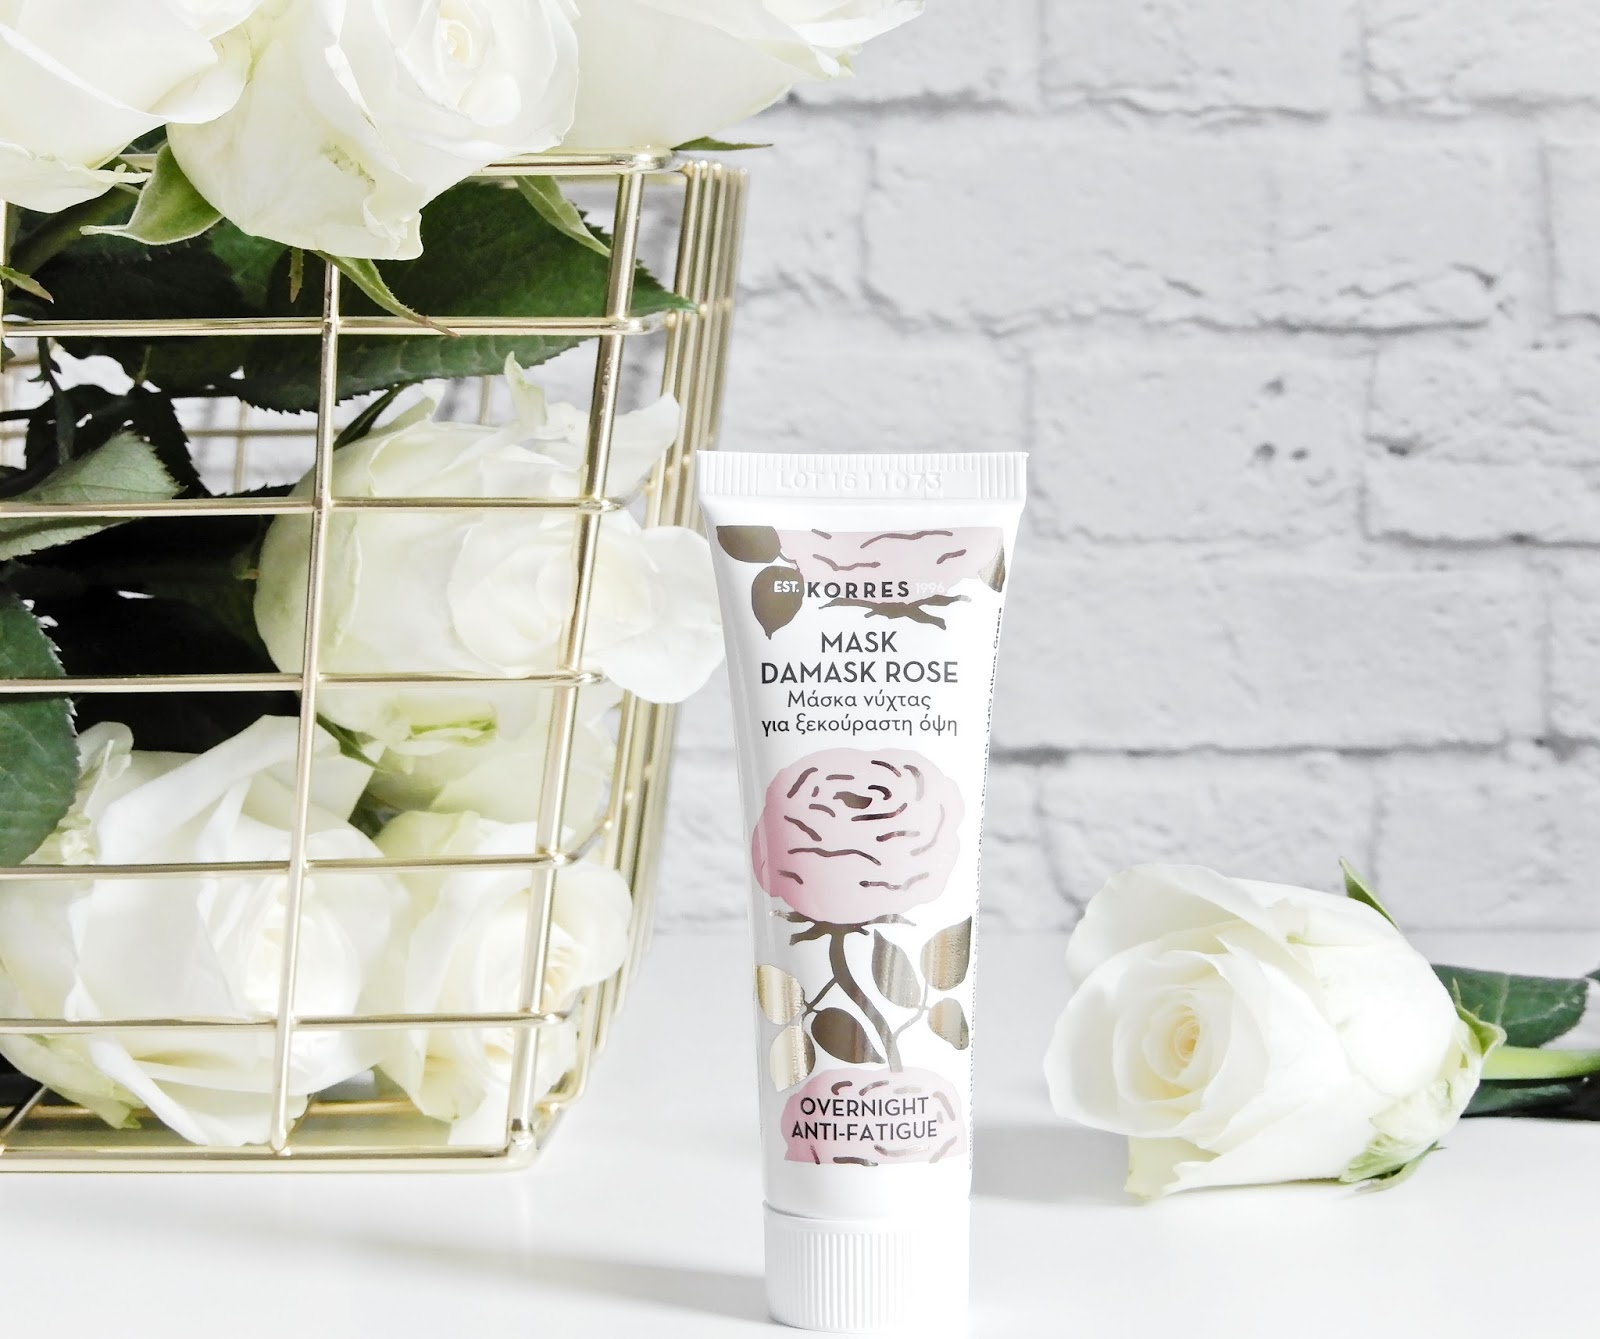 Korres DAMASK ROSE Overnight Treatment for Refreshed Skin,